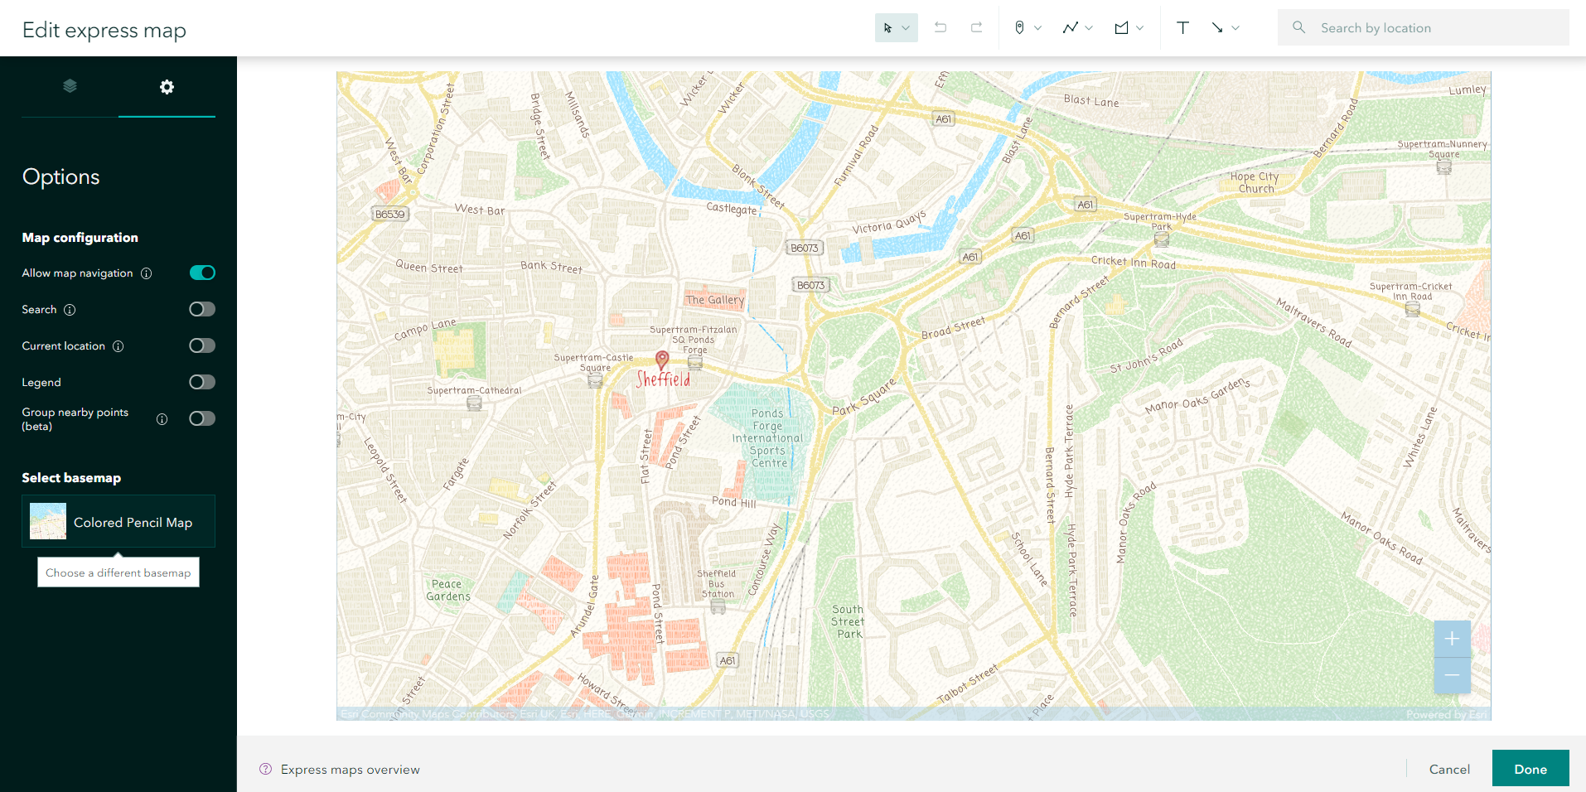 Colored pencil basemap is available in the new express maps.